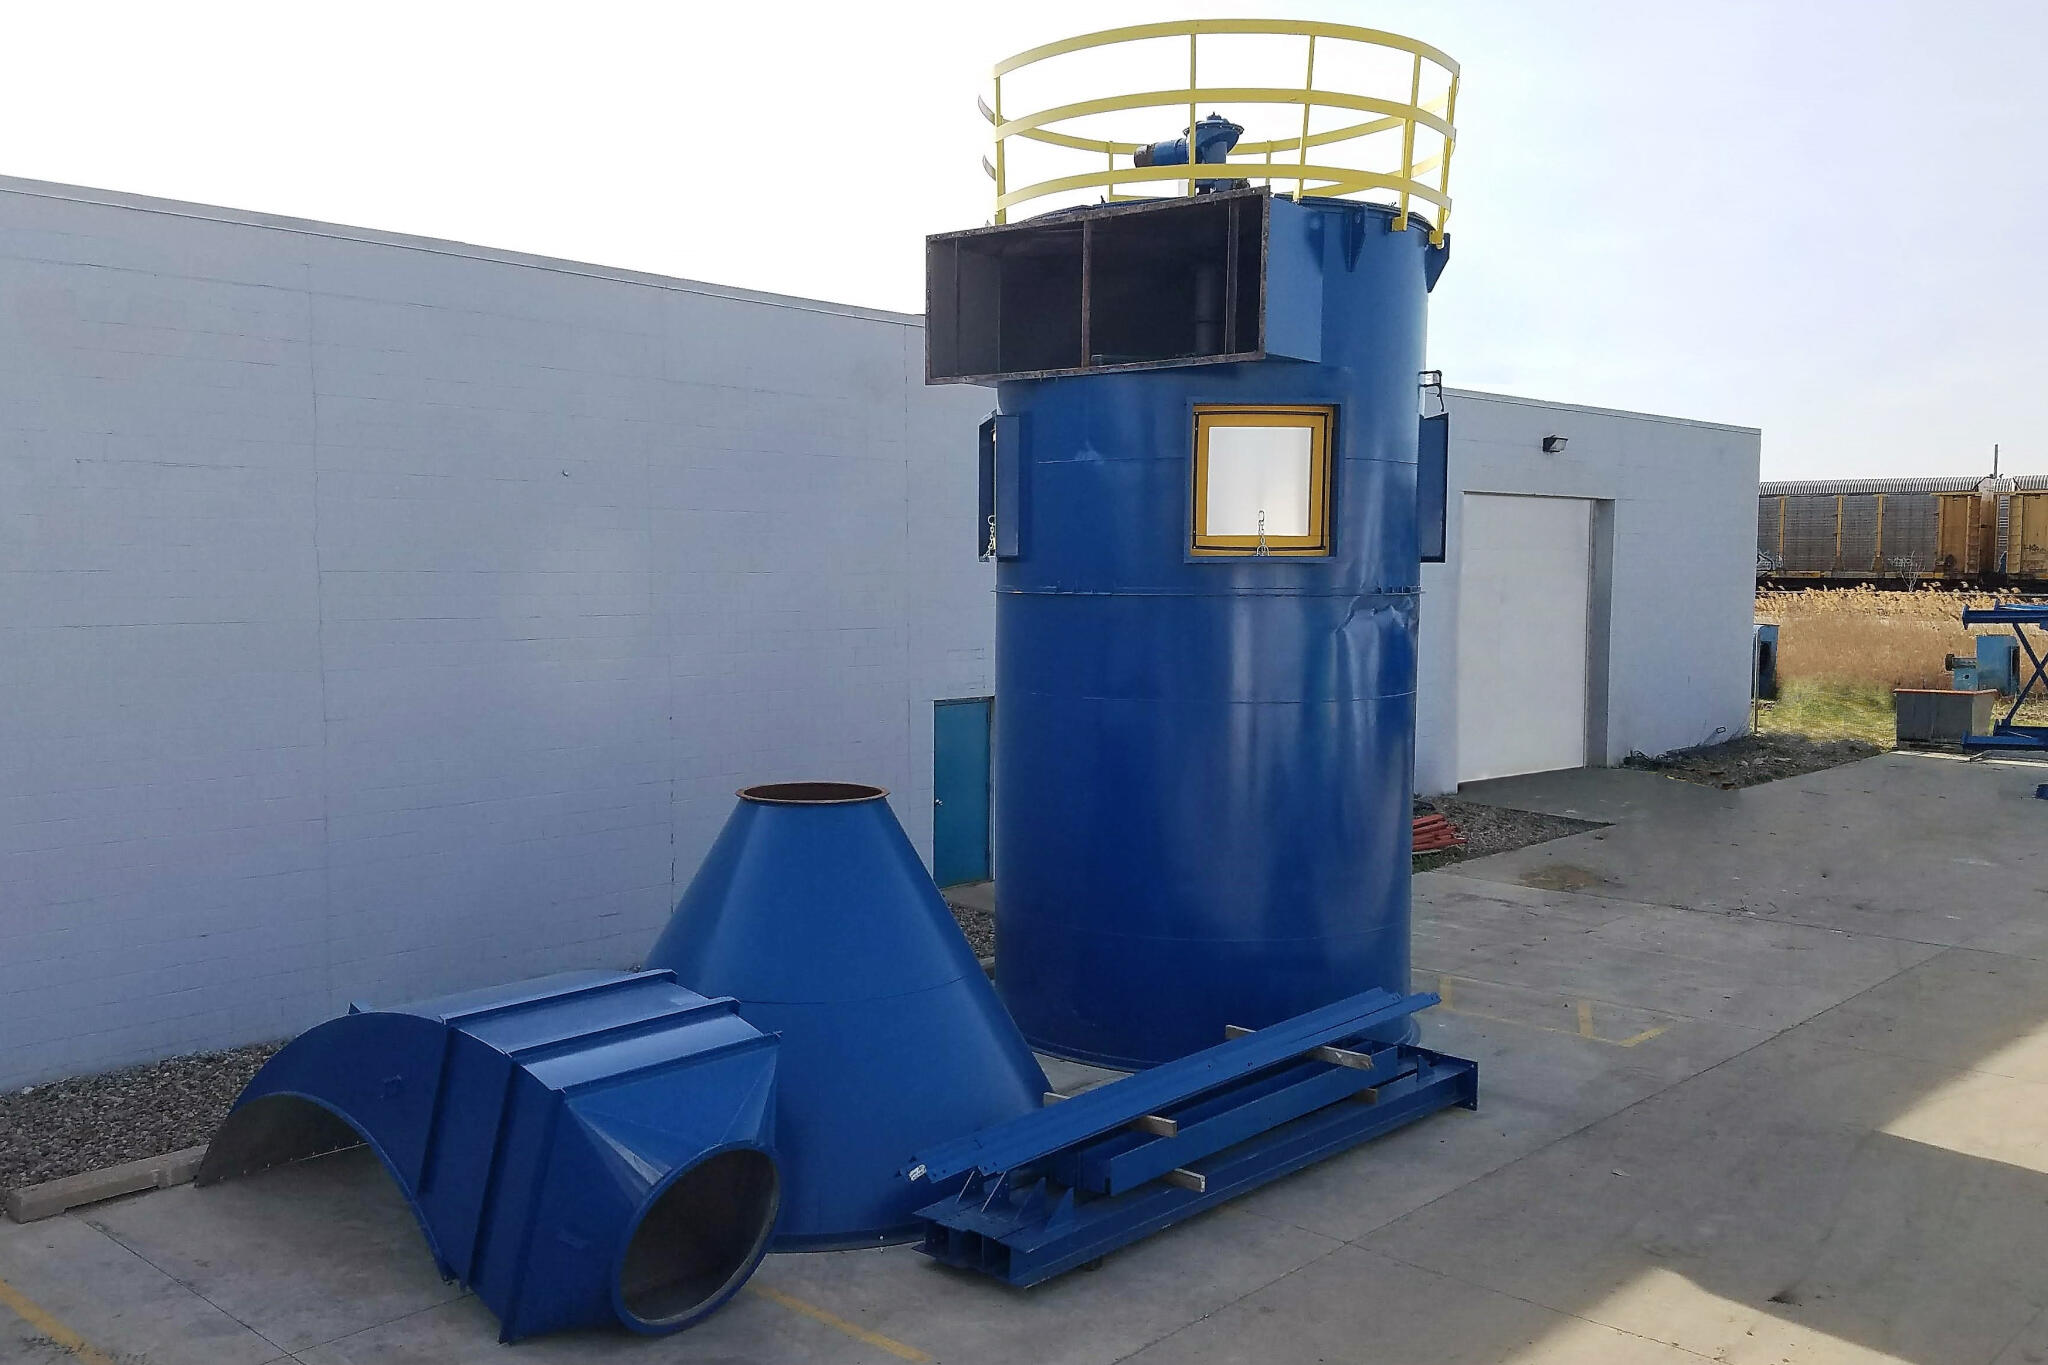 55,000 cfm Donaldson Torit #376RFT12 Baghouse Dust Collector